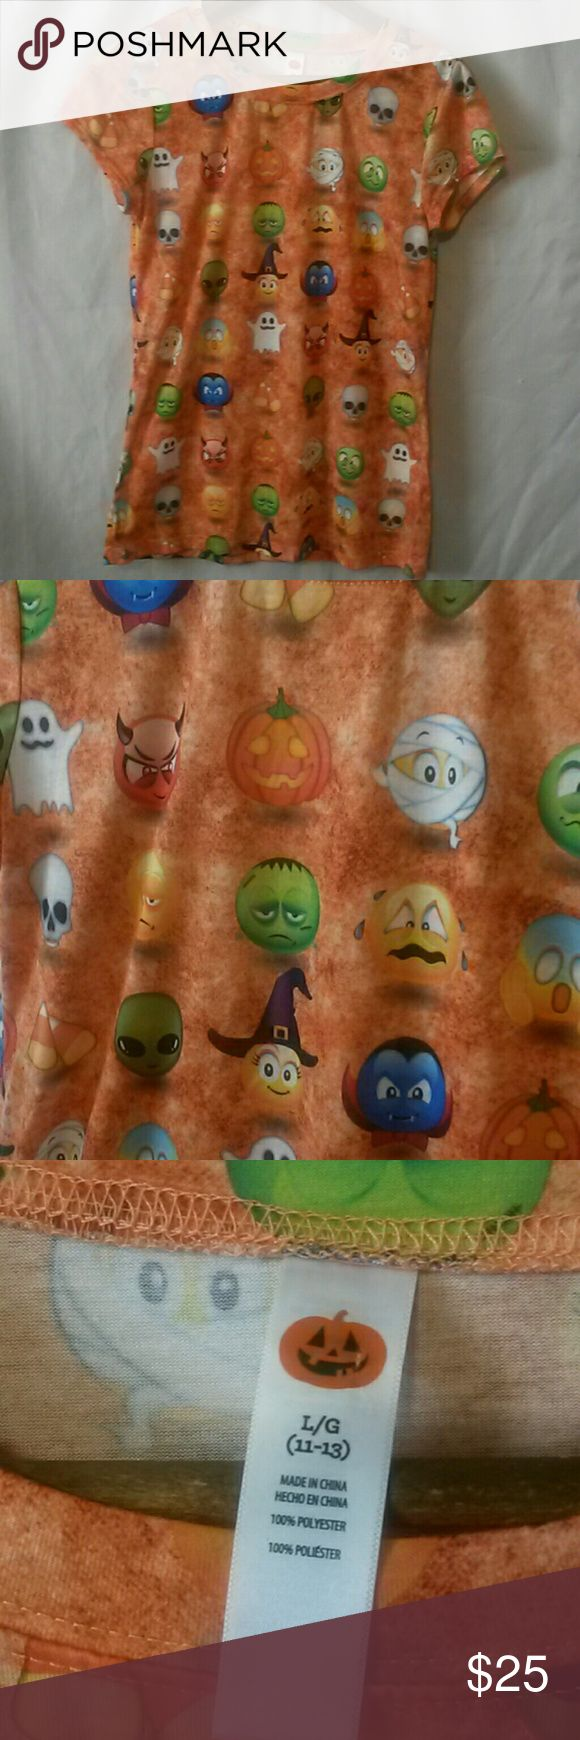 Halloween emoji tee! In great condition.  No stains. No holes Length: 26 inches Chest: 18 inches  Smoke free,  pet friendly home Shirts & Tops Tees - Short Sleeve